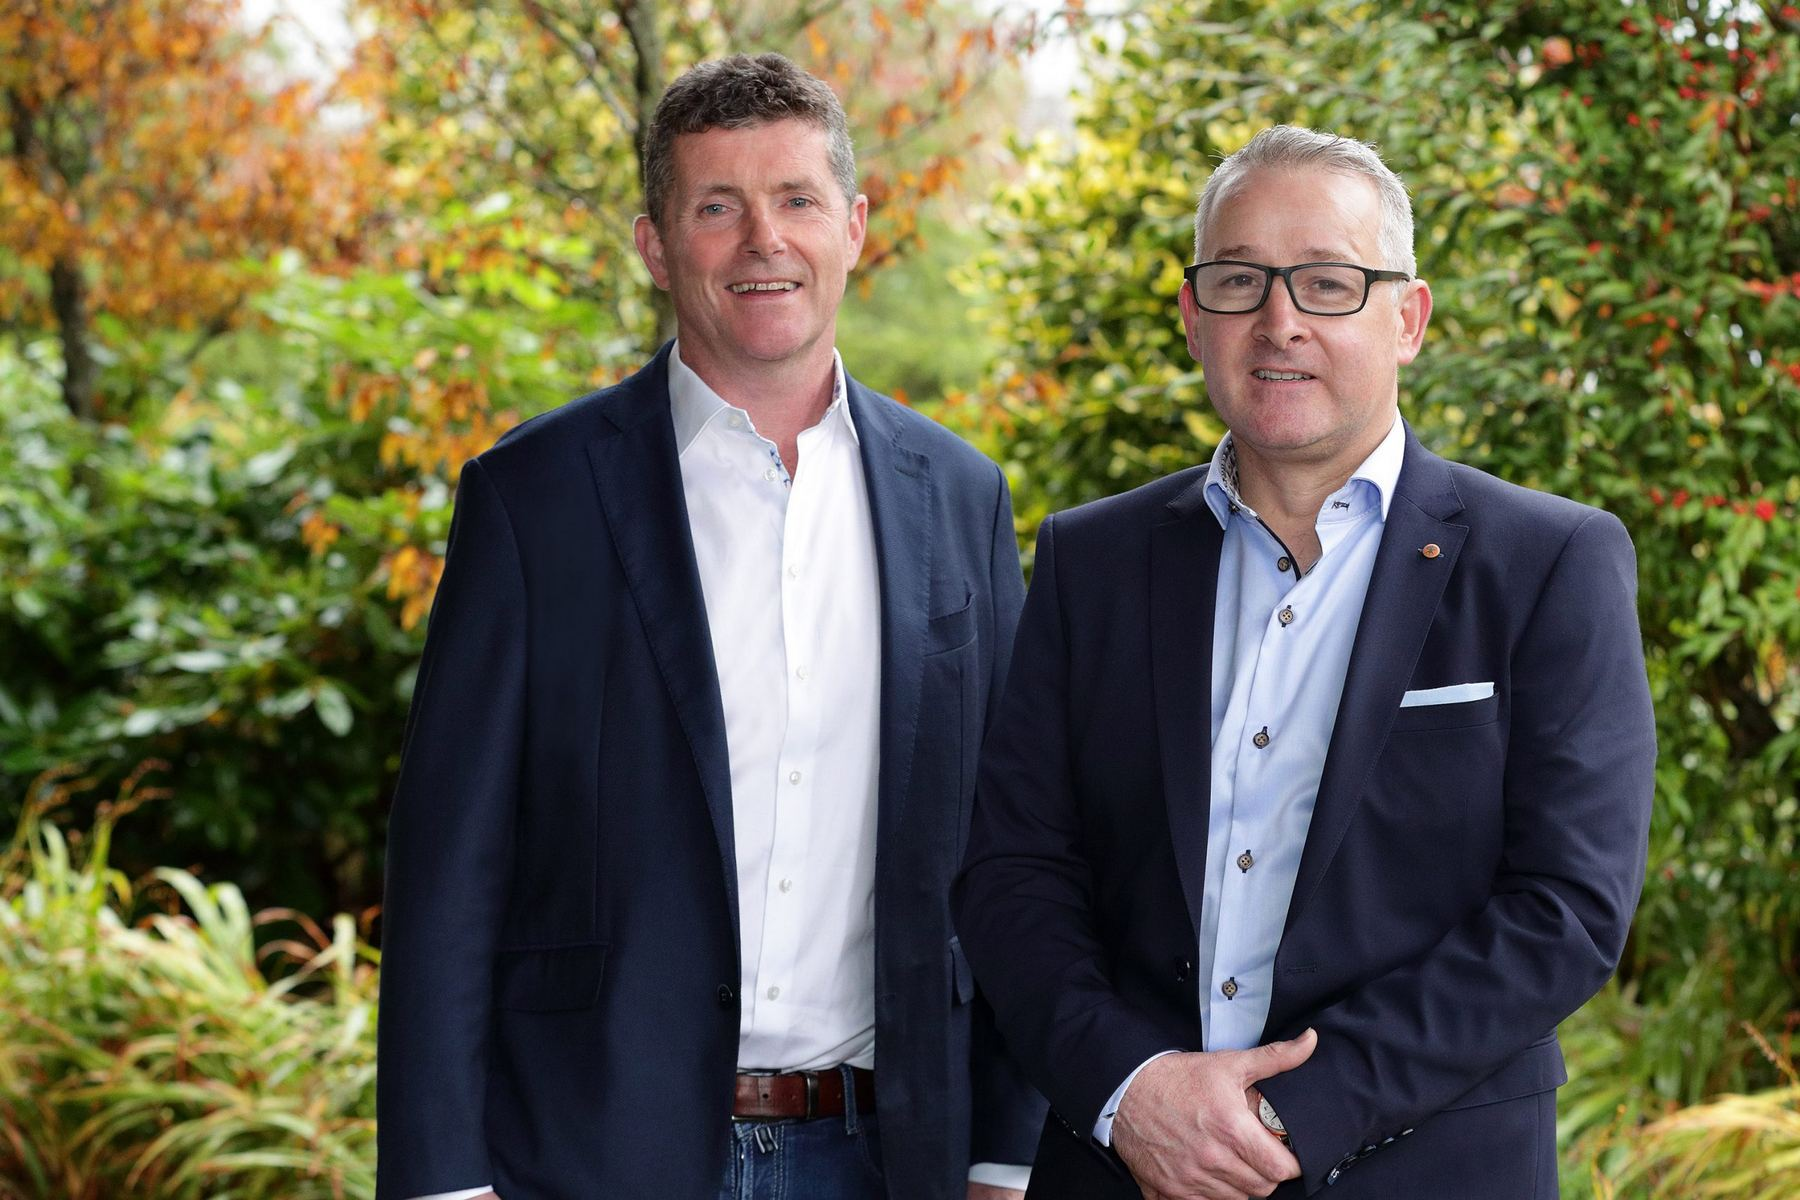 Jimmy Kirby, Group Managing Director and Mark Flanagan, Group Operations Director